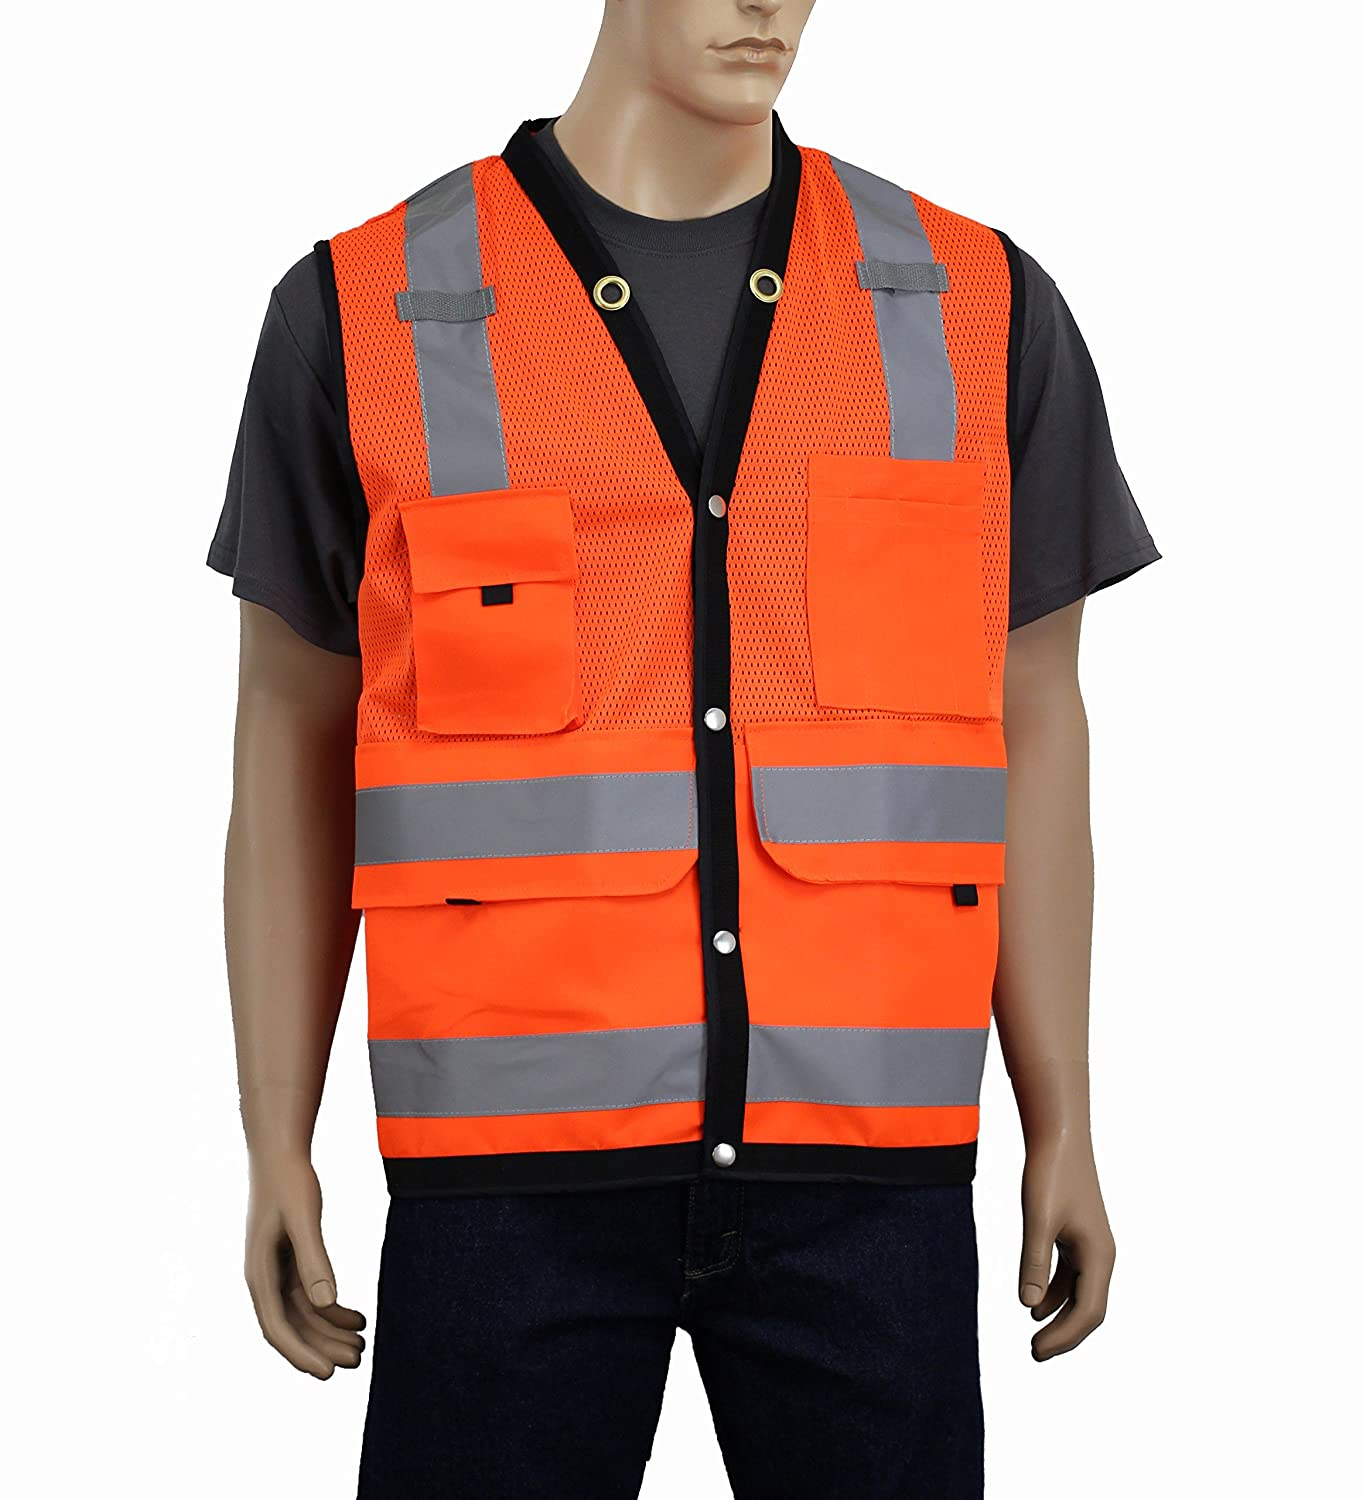 Orange, 3XL Mic Tabs /& High Visibility Reflective Tape SURV Safety Depot Breathable Surveryor Vest ANSI Class 2 Approved Large Deep Pockets